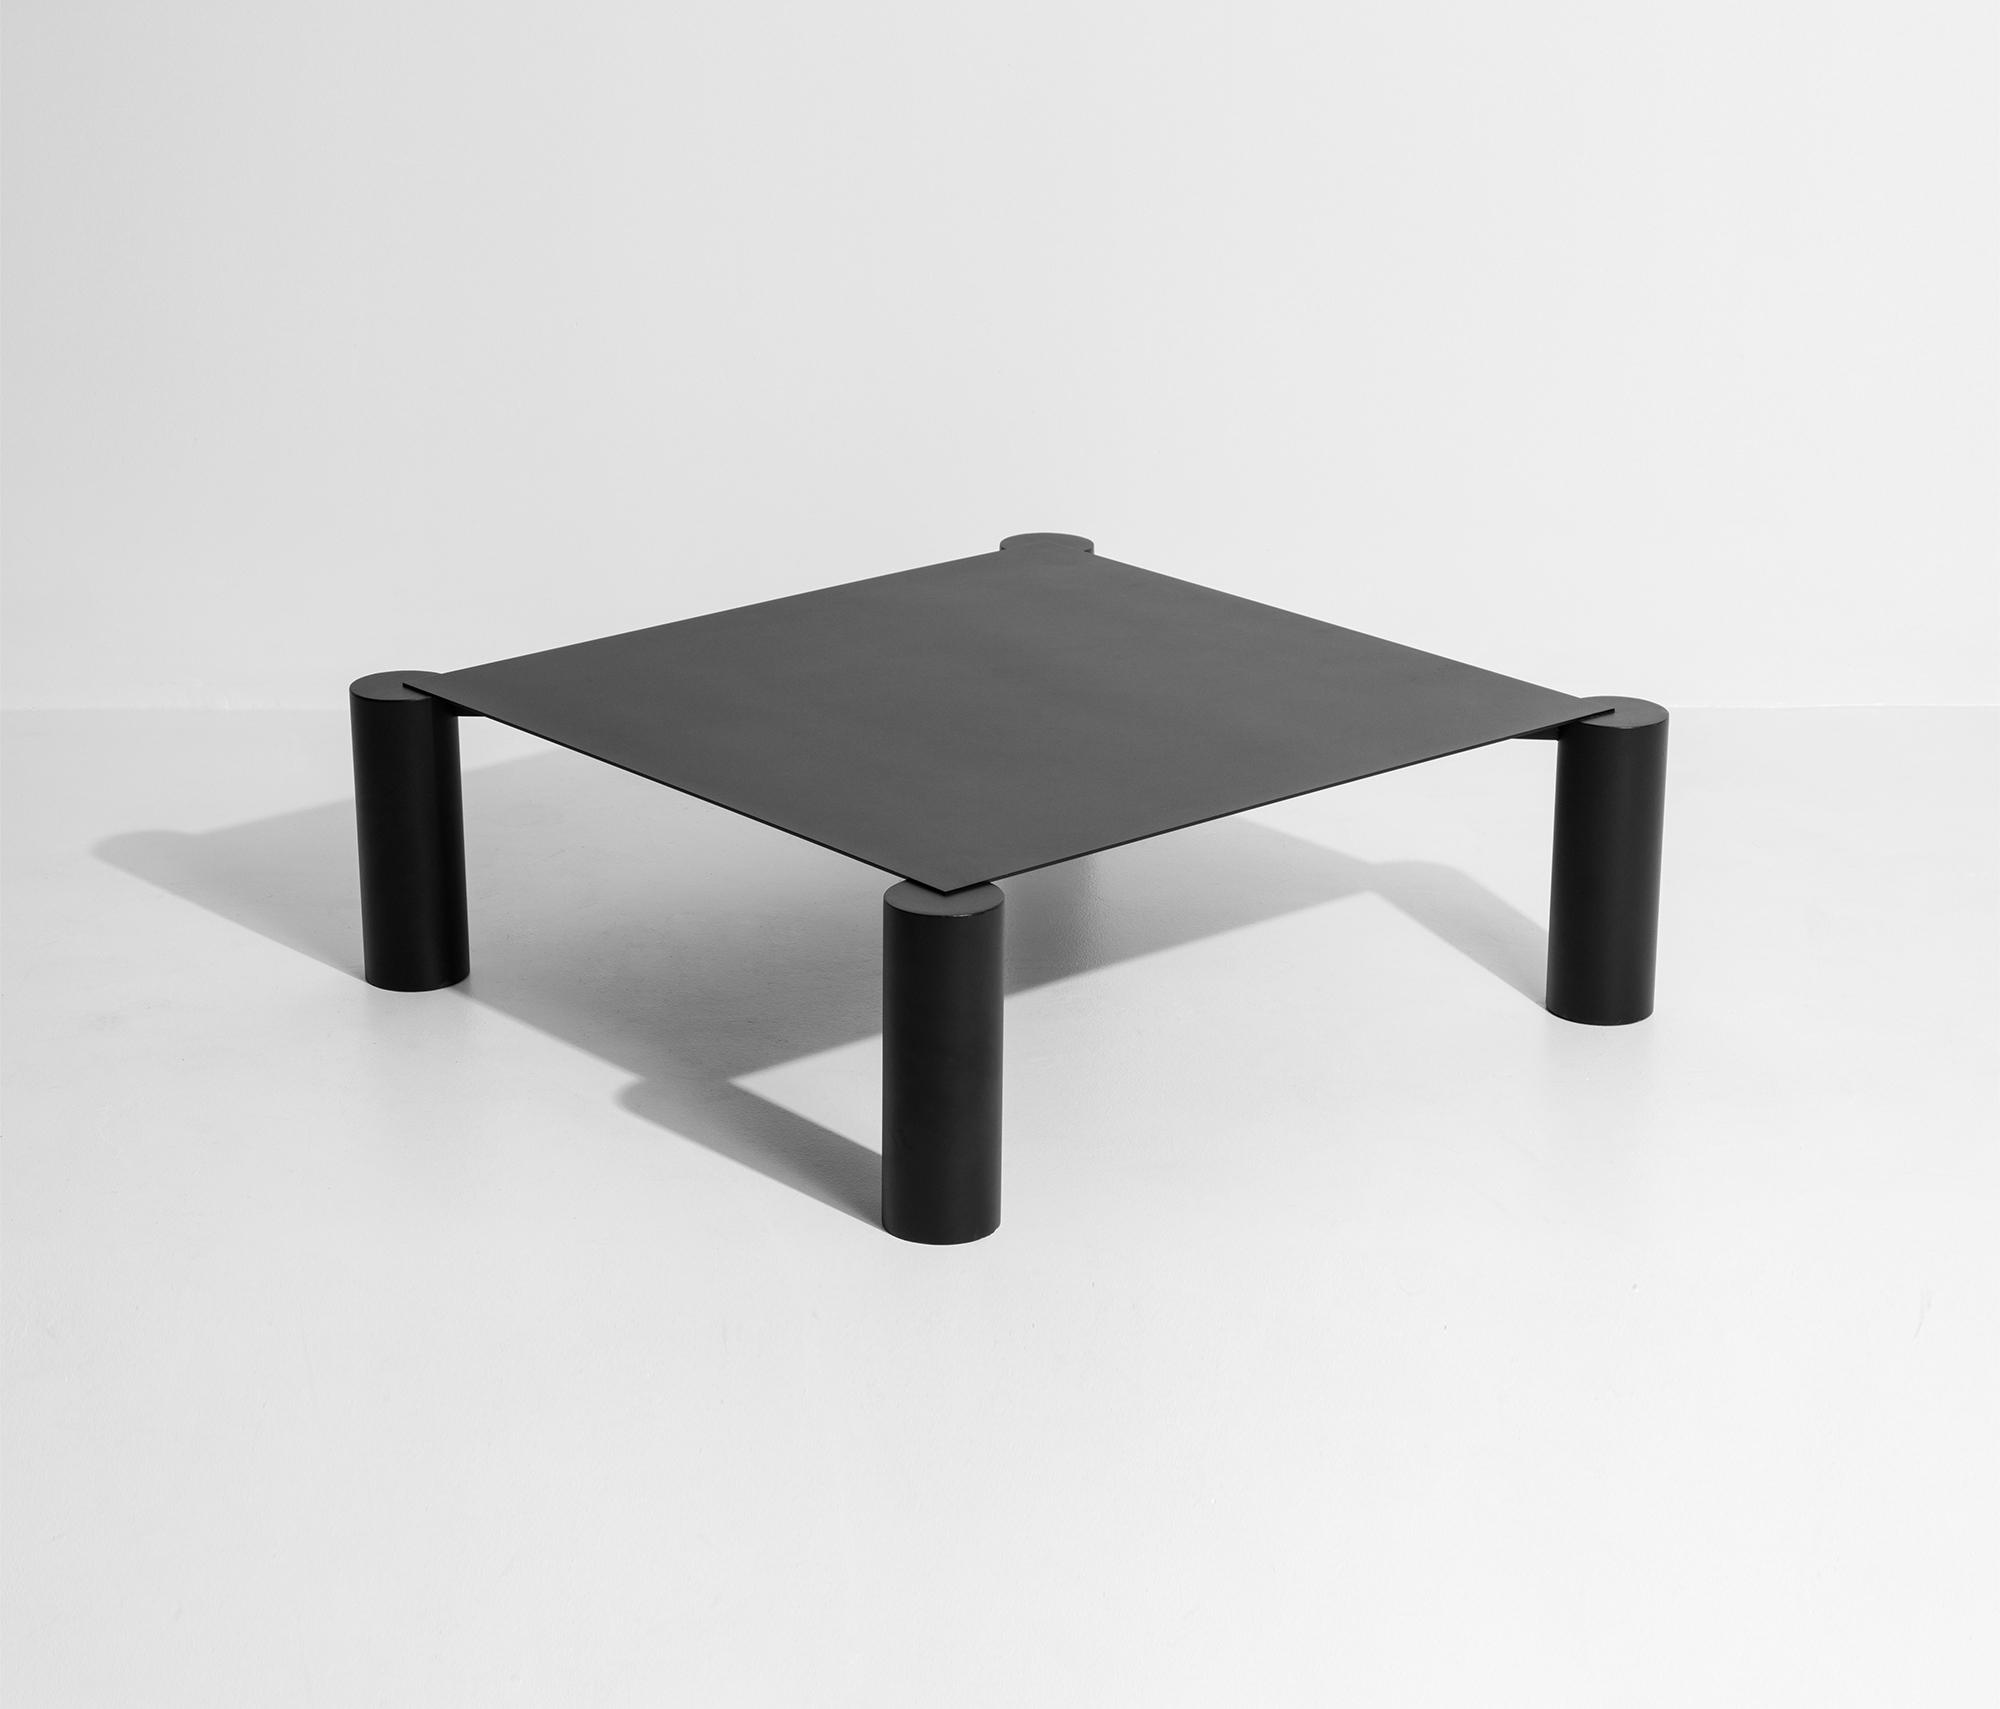 Thin Square Coffee Tables From Petite Friture Architonic